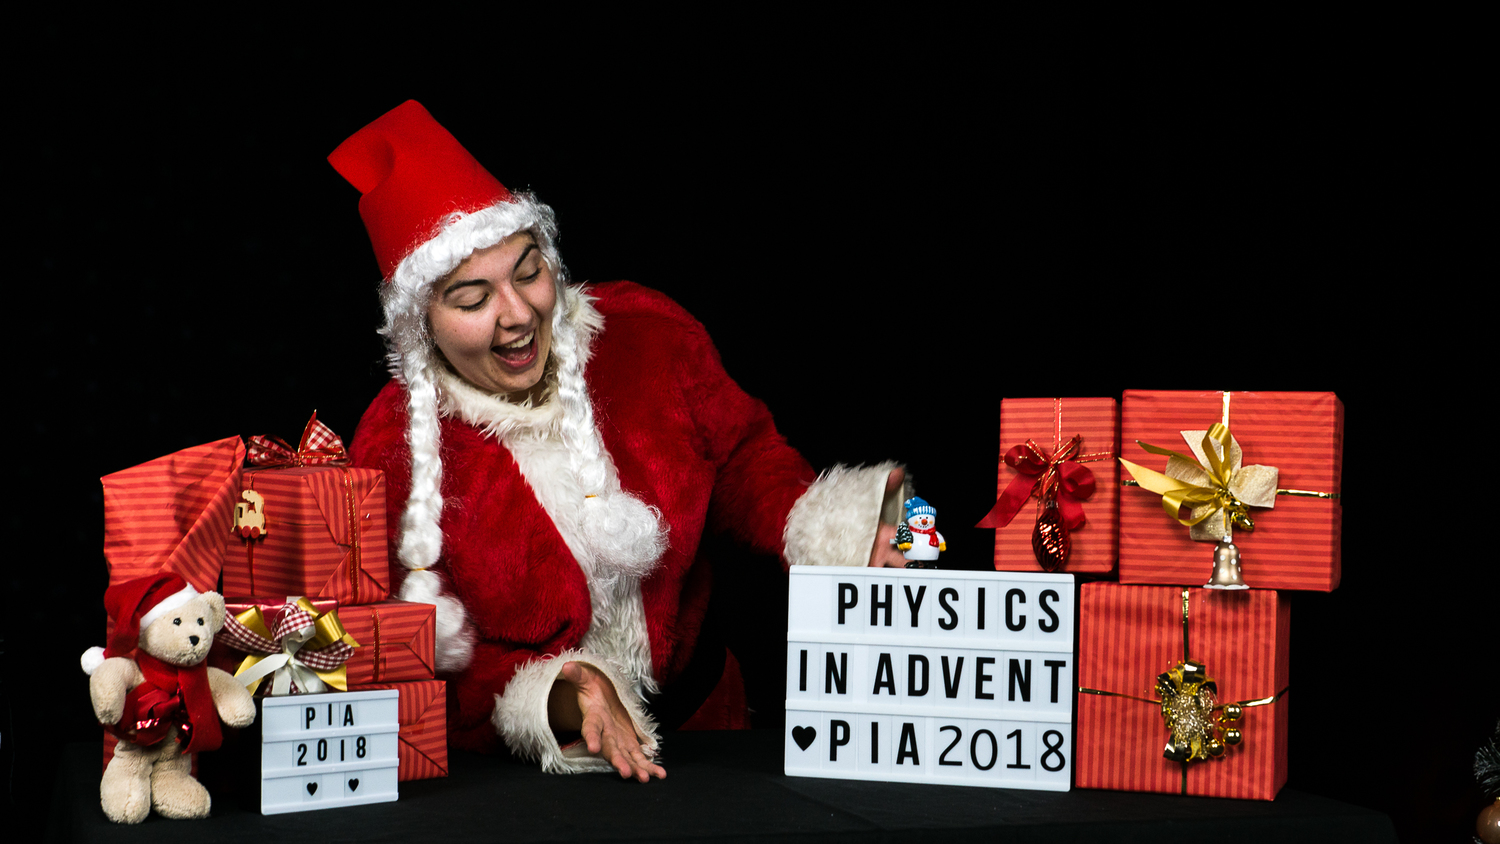 Physics in Advent